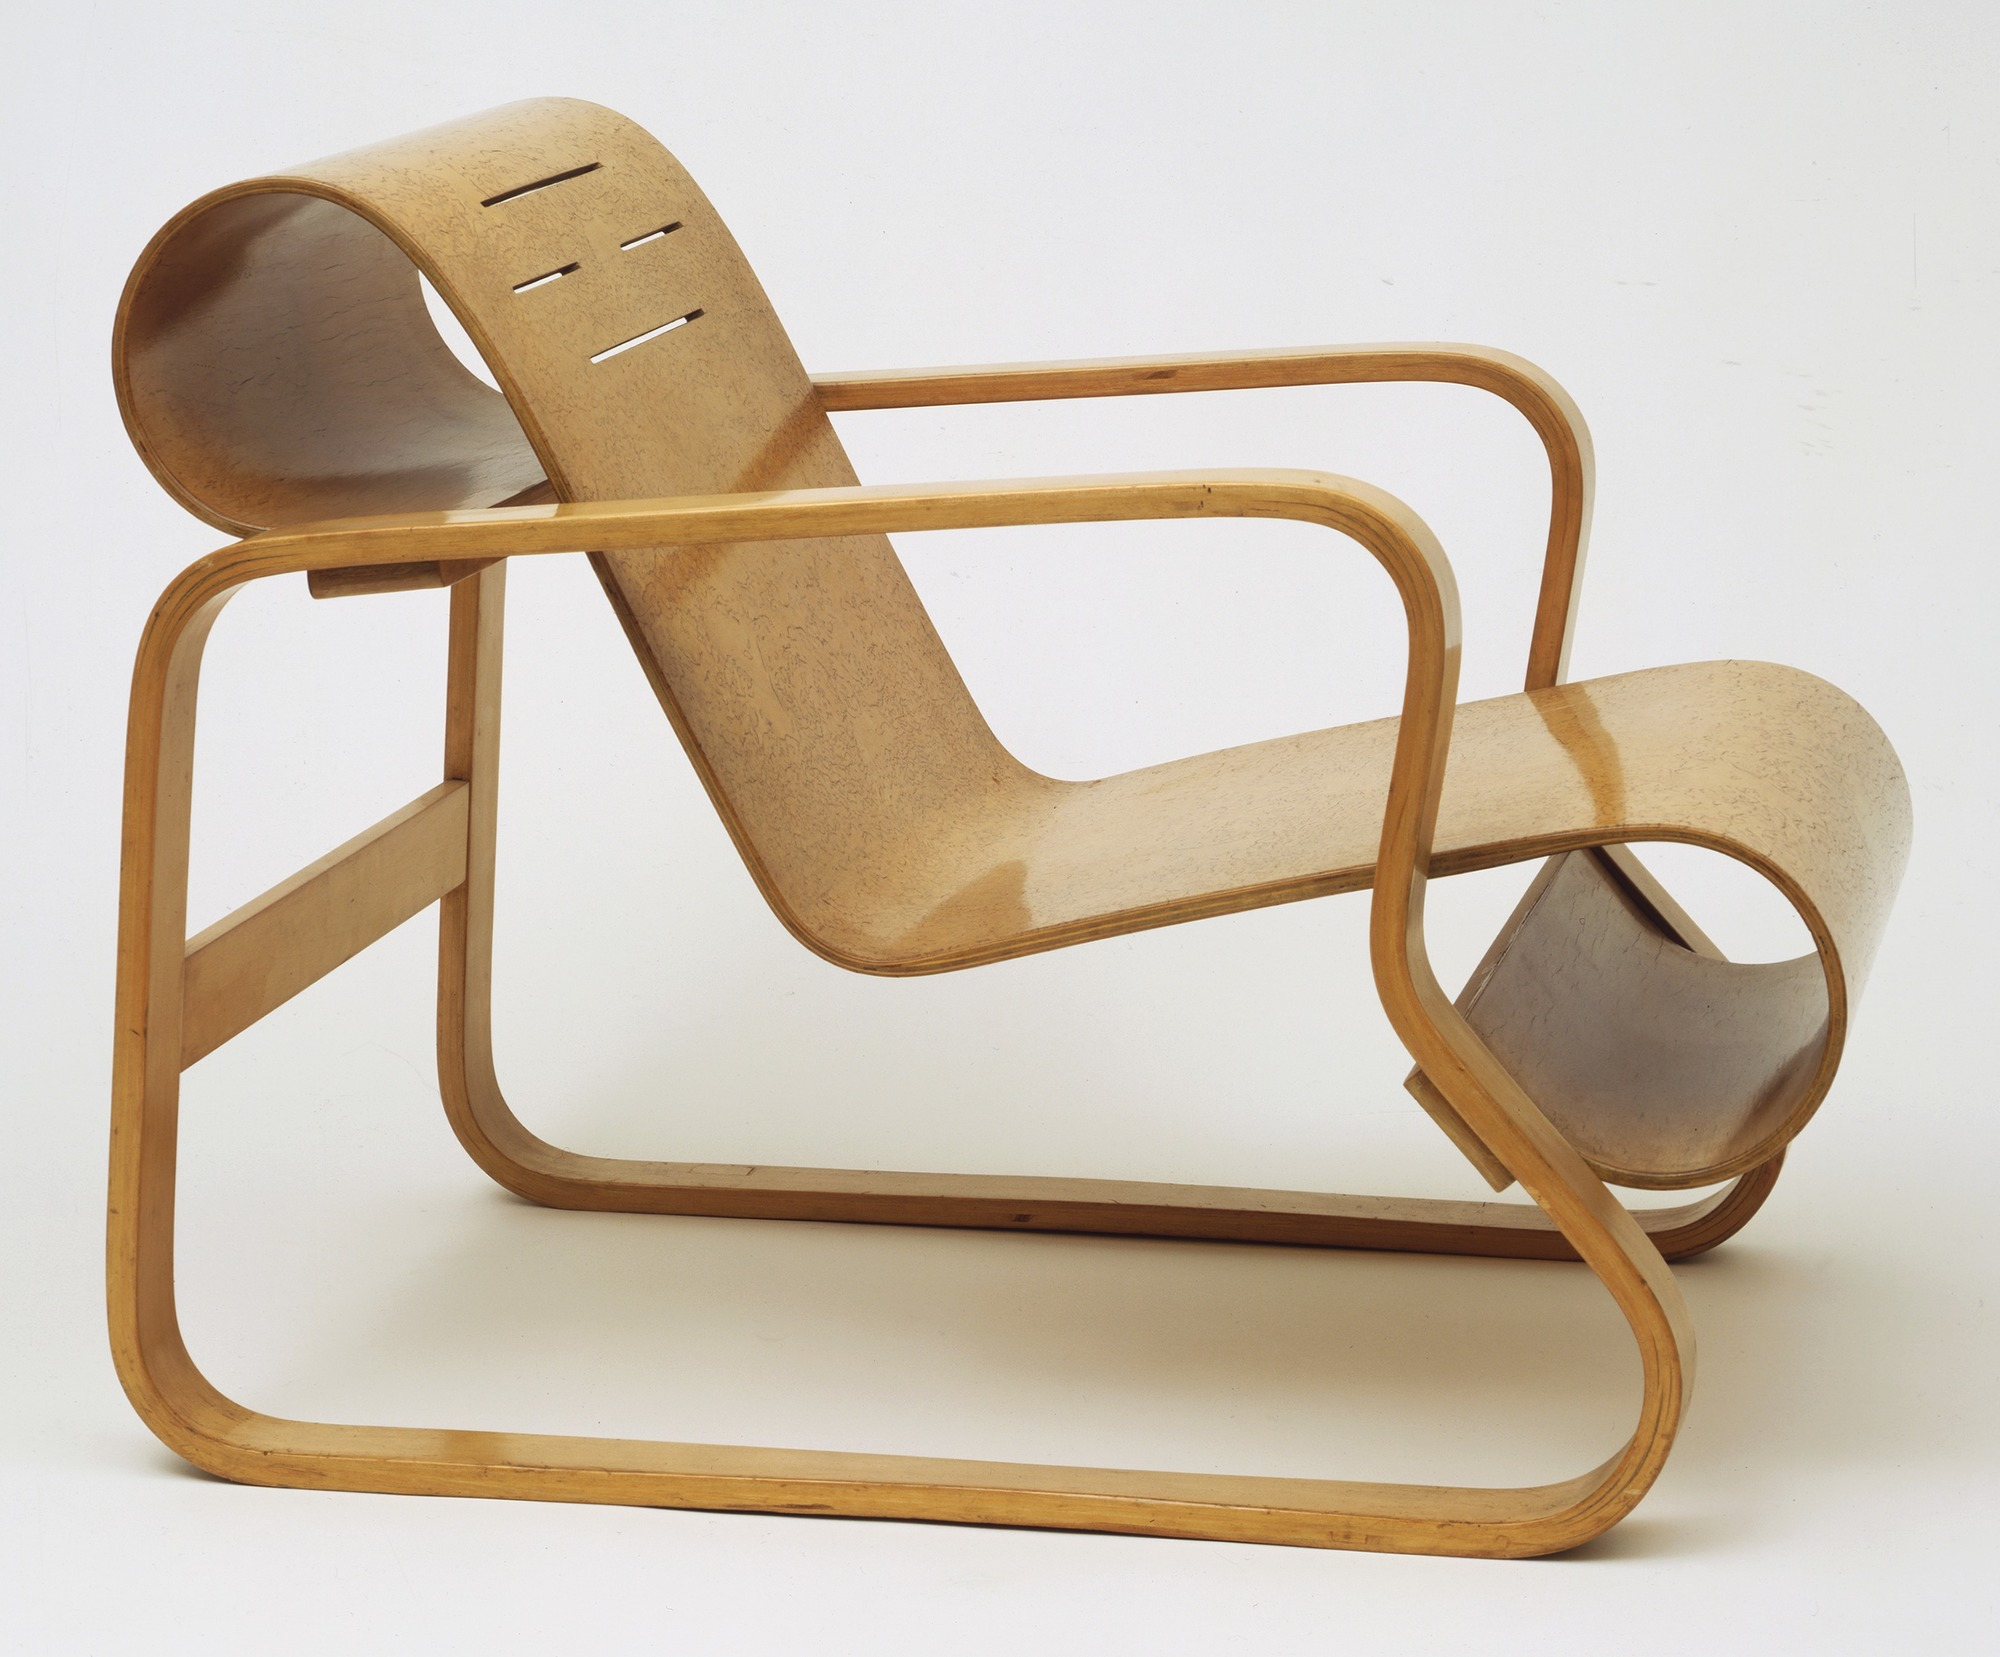 Alvar Aalto Paimio Chair:  https://www.moma.org/collection/works/92879